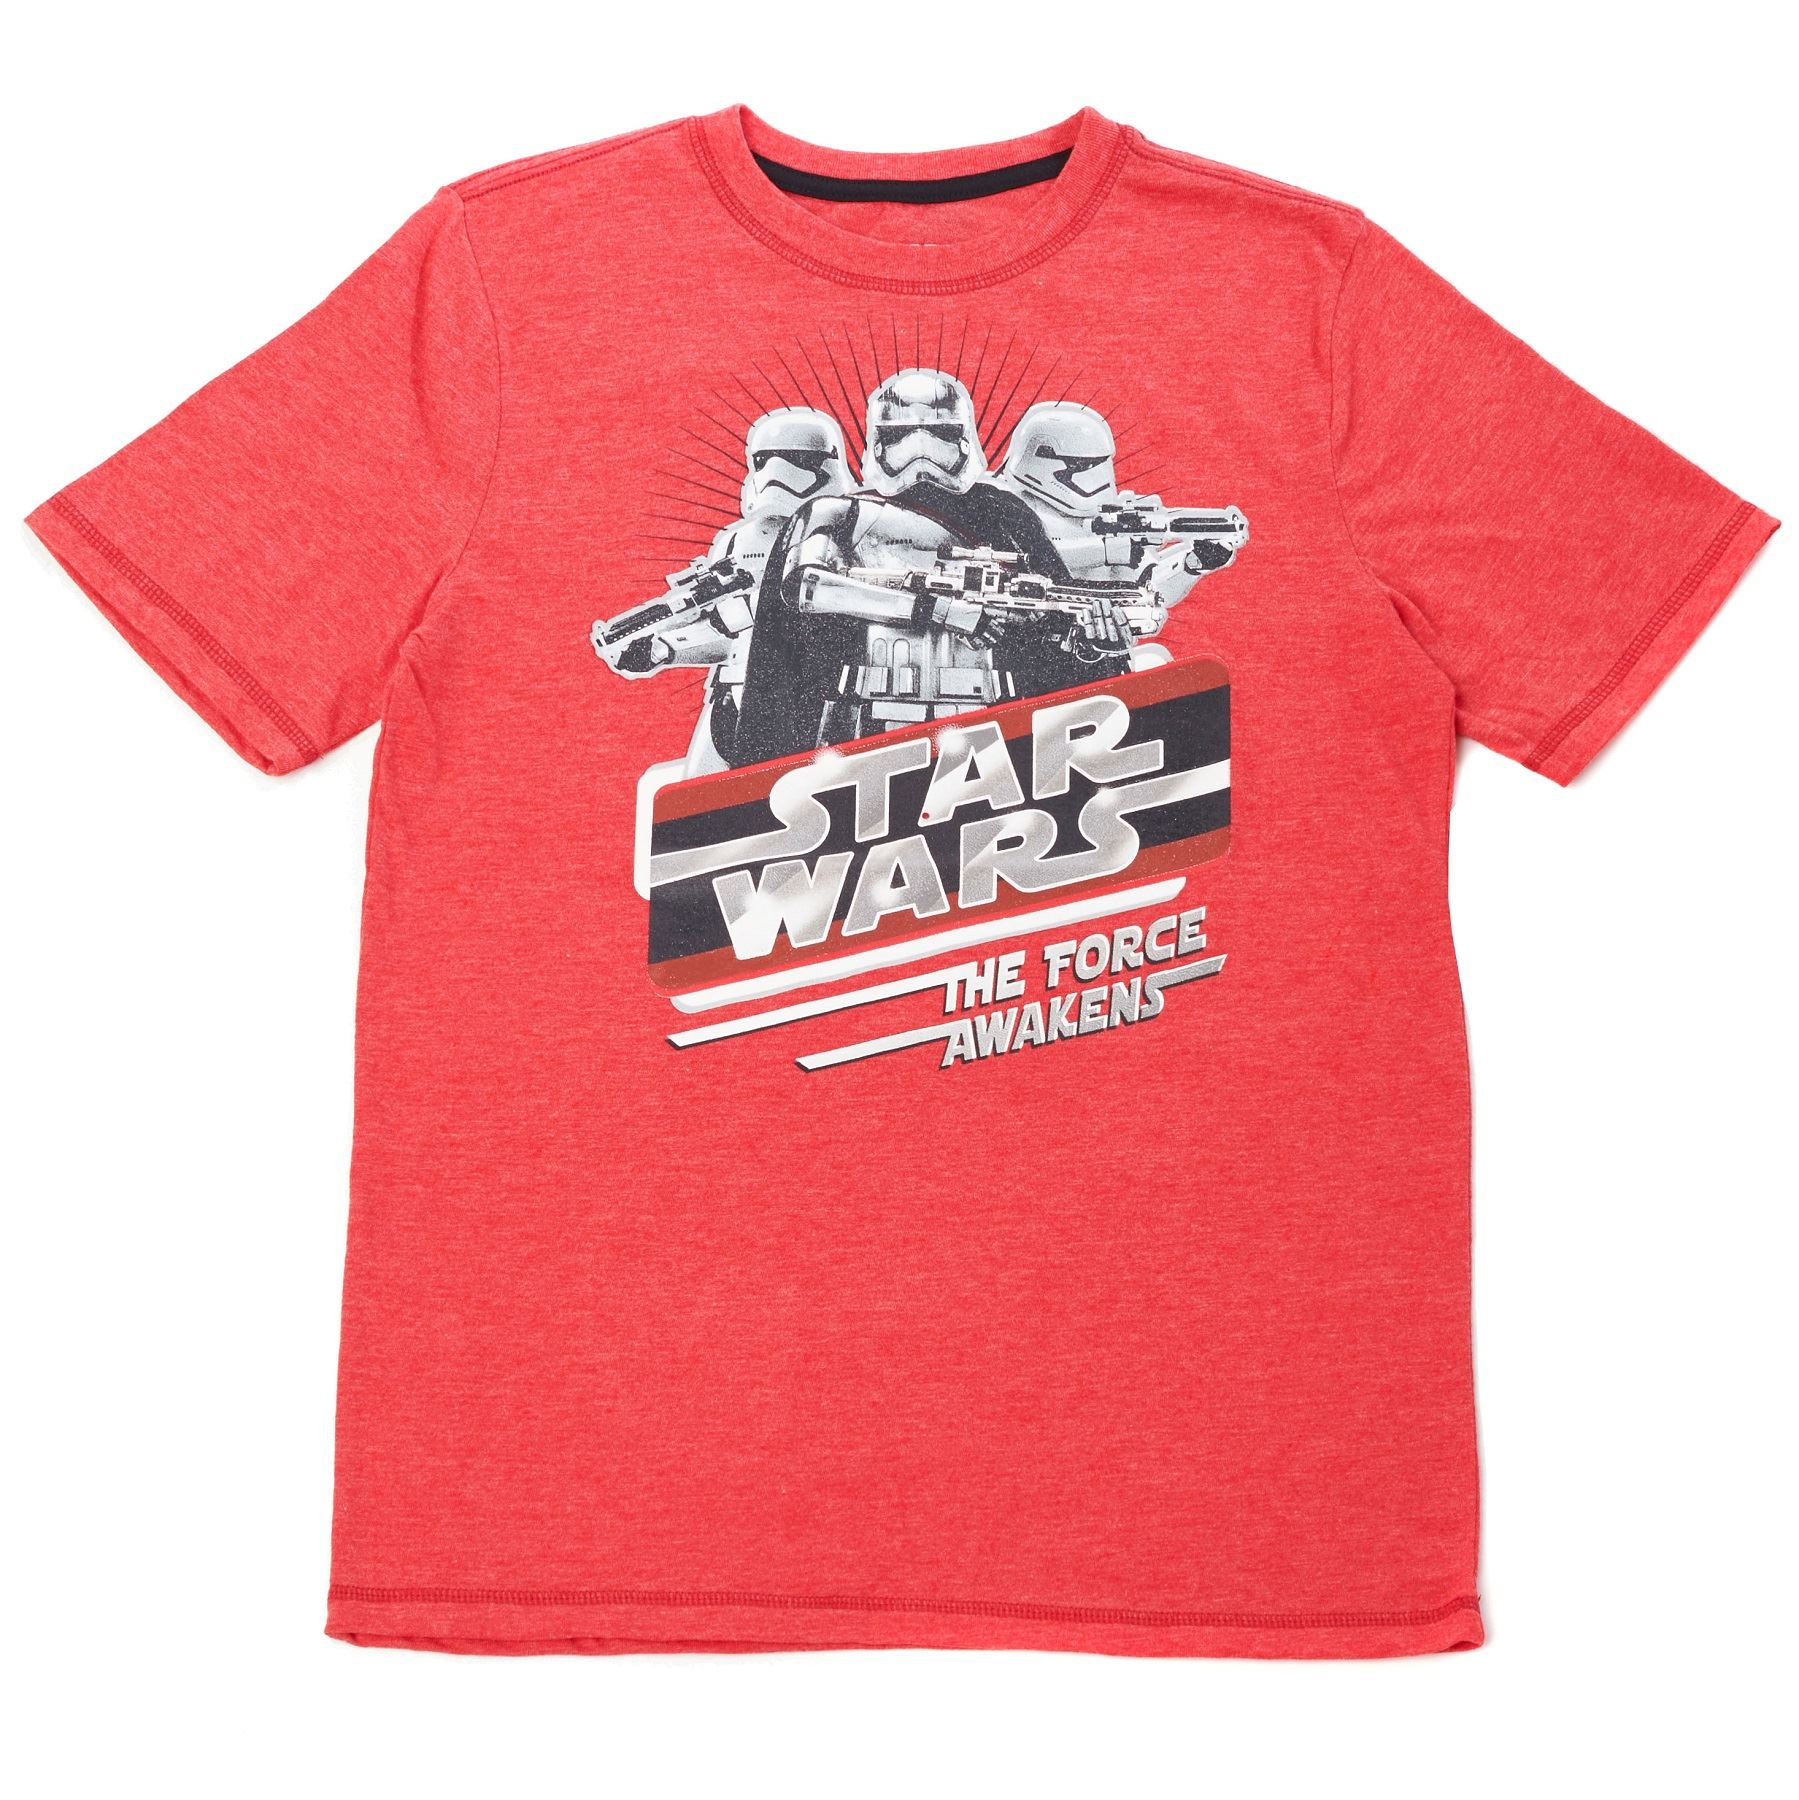 STAR WARS KIDS GRAPHIC TEE COTTON SIZE 14-16 RULE THE GALAXY KYLO REN L CHARCOAL